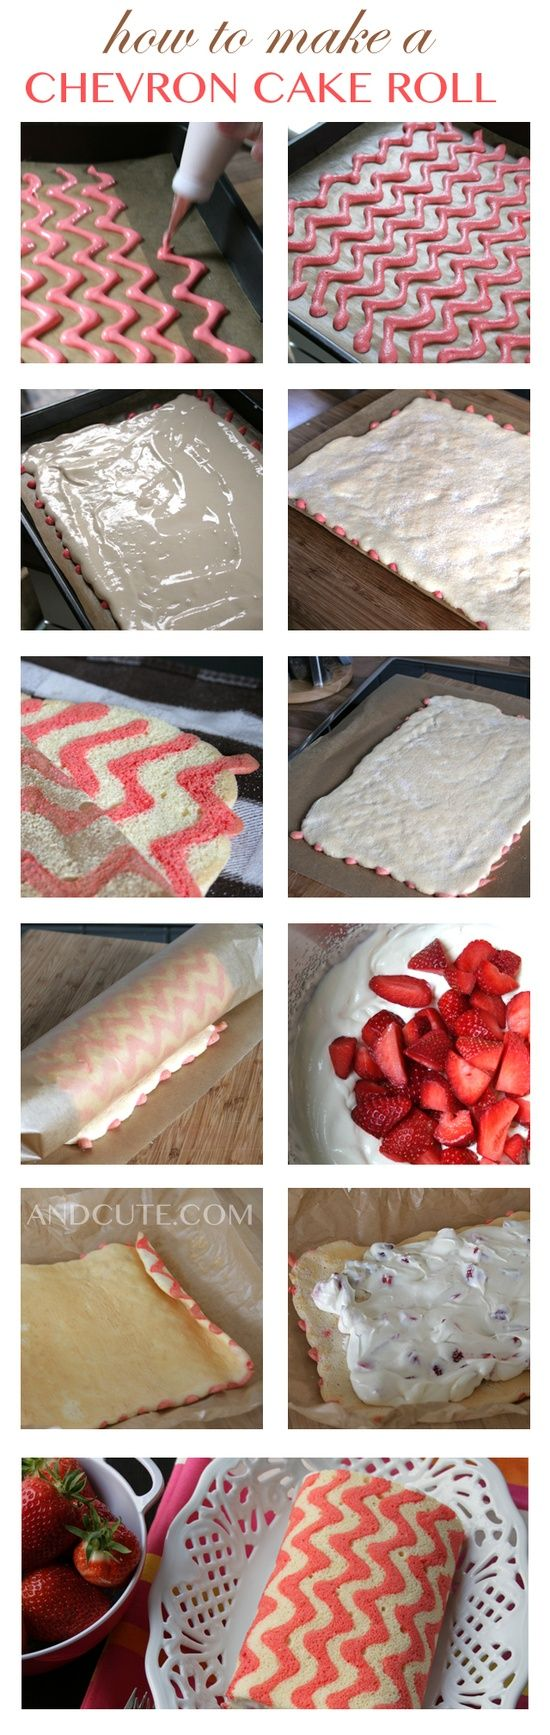 Chevron Cake Roll. So cool!!! i have a cake roll recipe I have been wanting to try...this would make it even more fun!